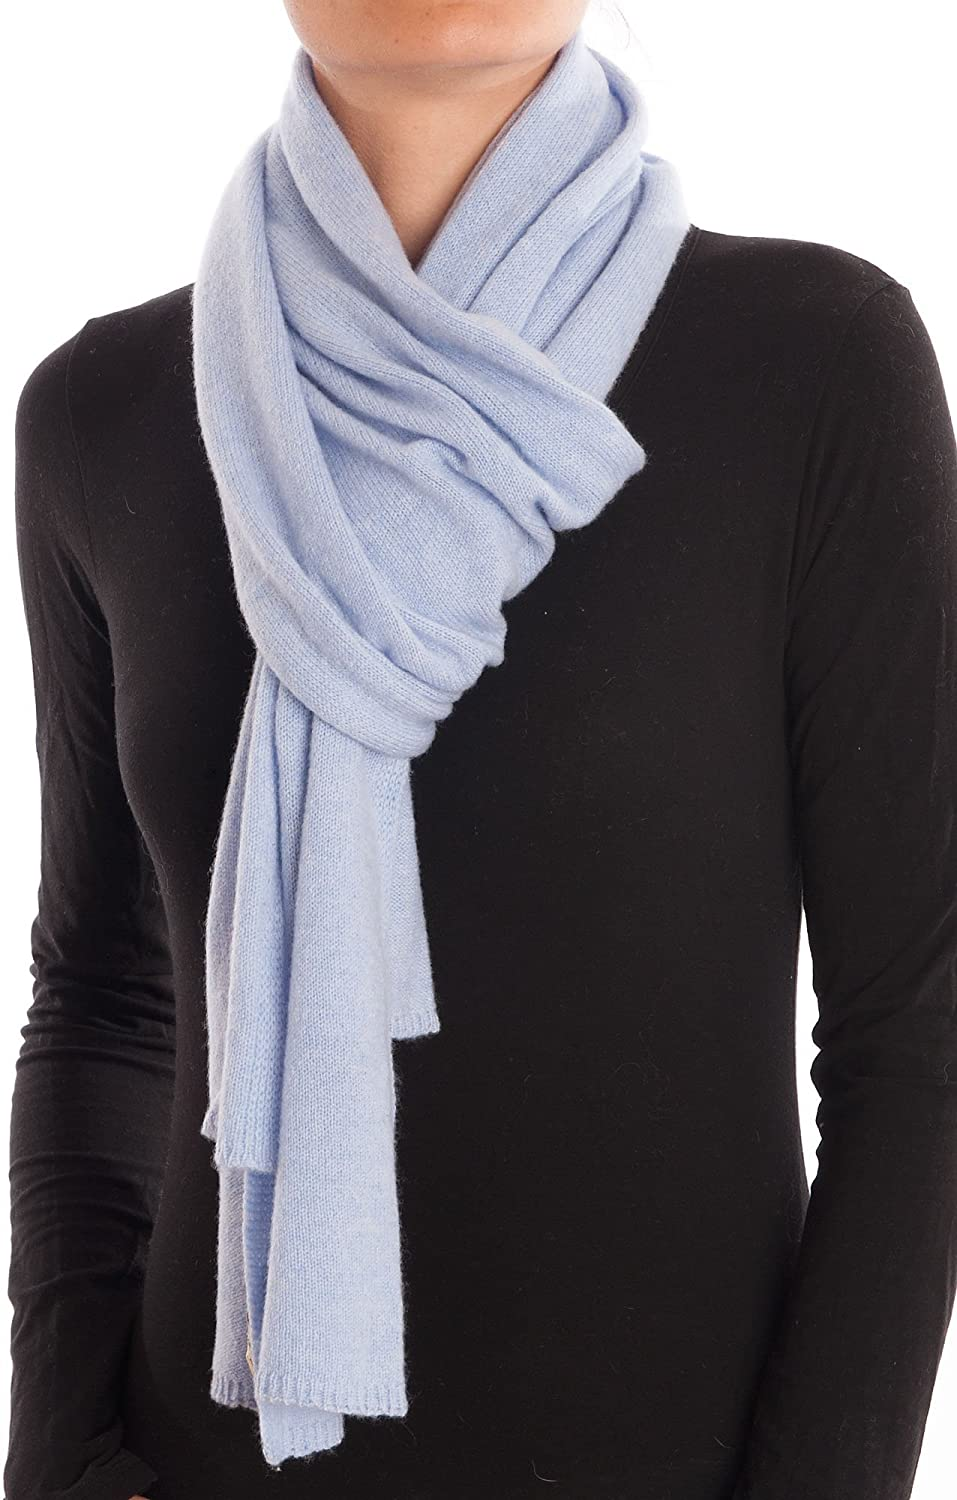 Dalle Piane Cashmere  Scarf 100% cashmere  Made in   Woman Man, color  Sky, One size